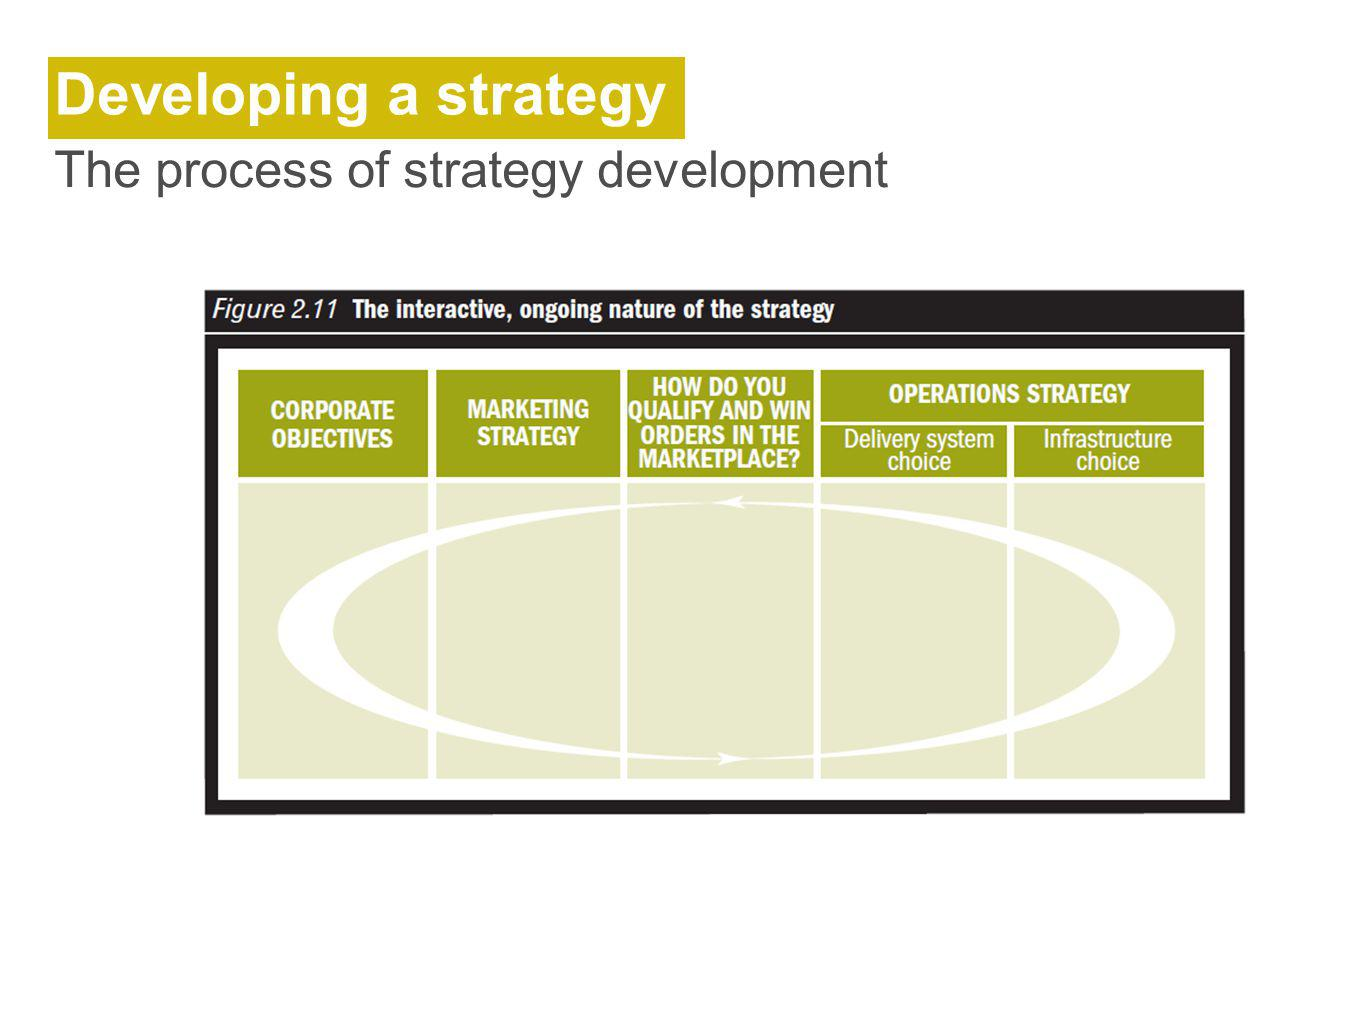 The process of developing a strategic marketing plan